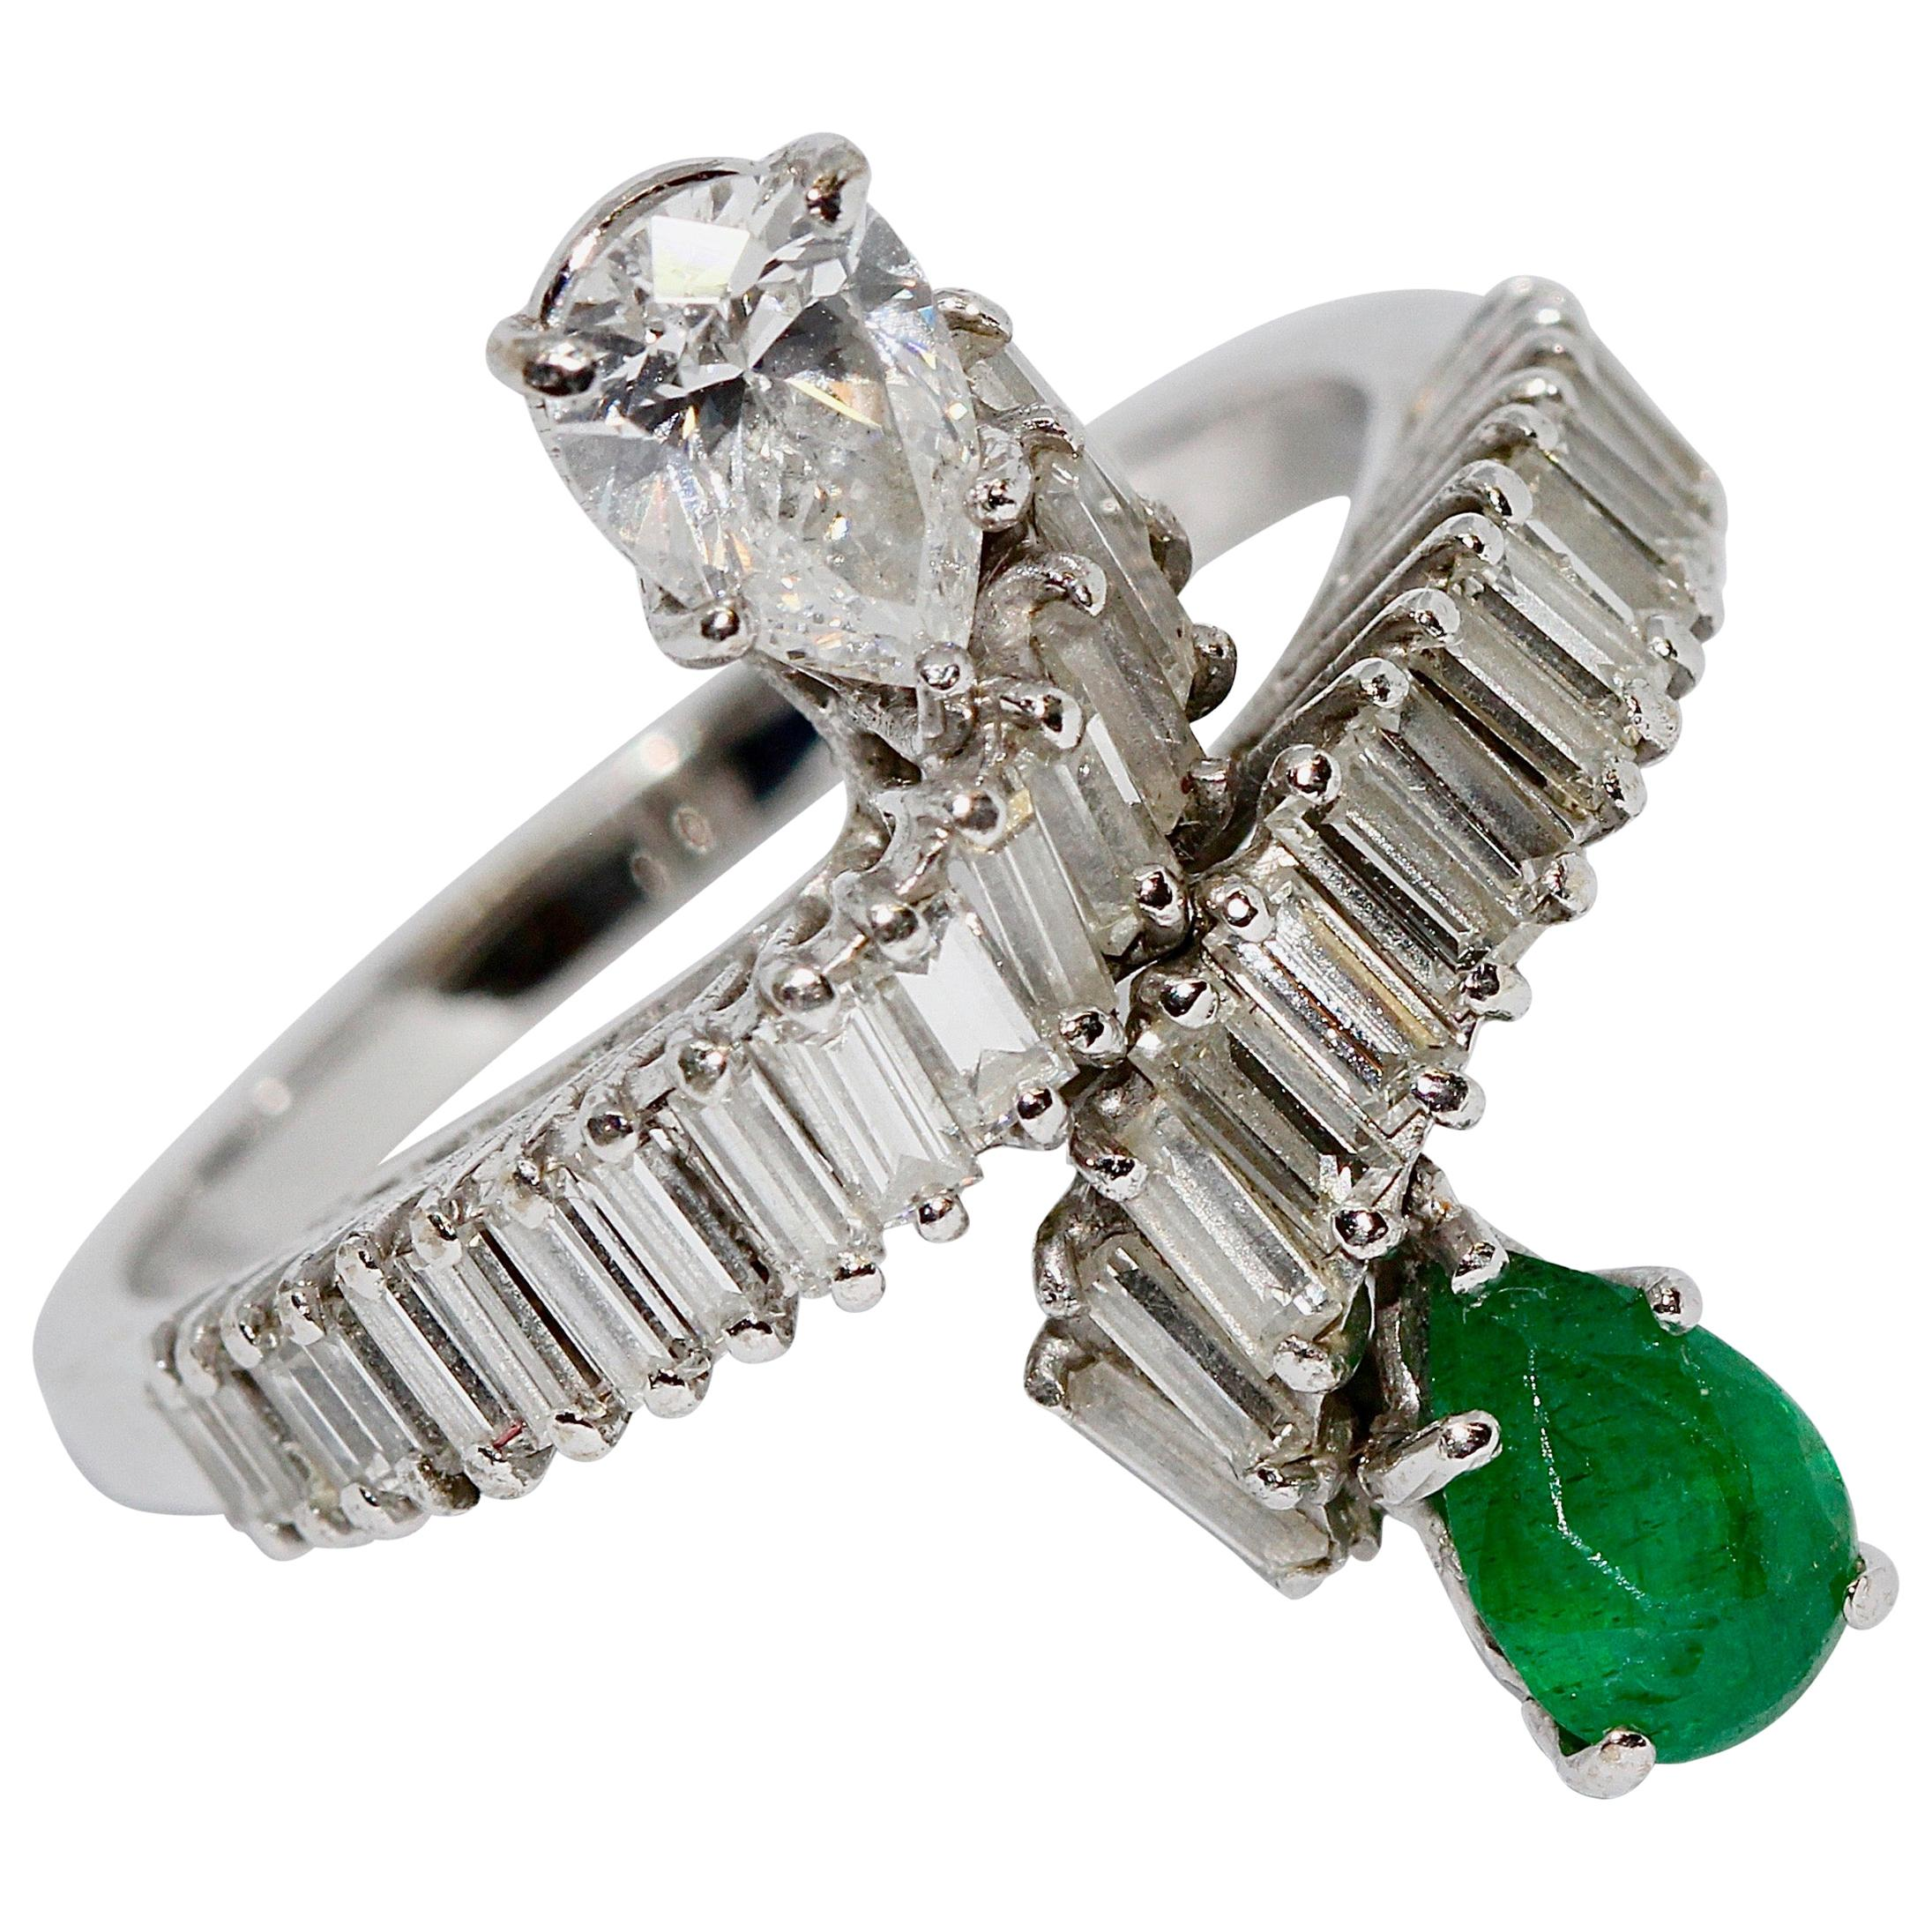 18 Karat White Gold Ring with Pear Cut Diamond and Emerald and Baguette Diamonds